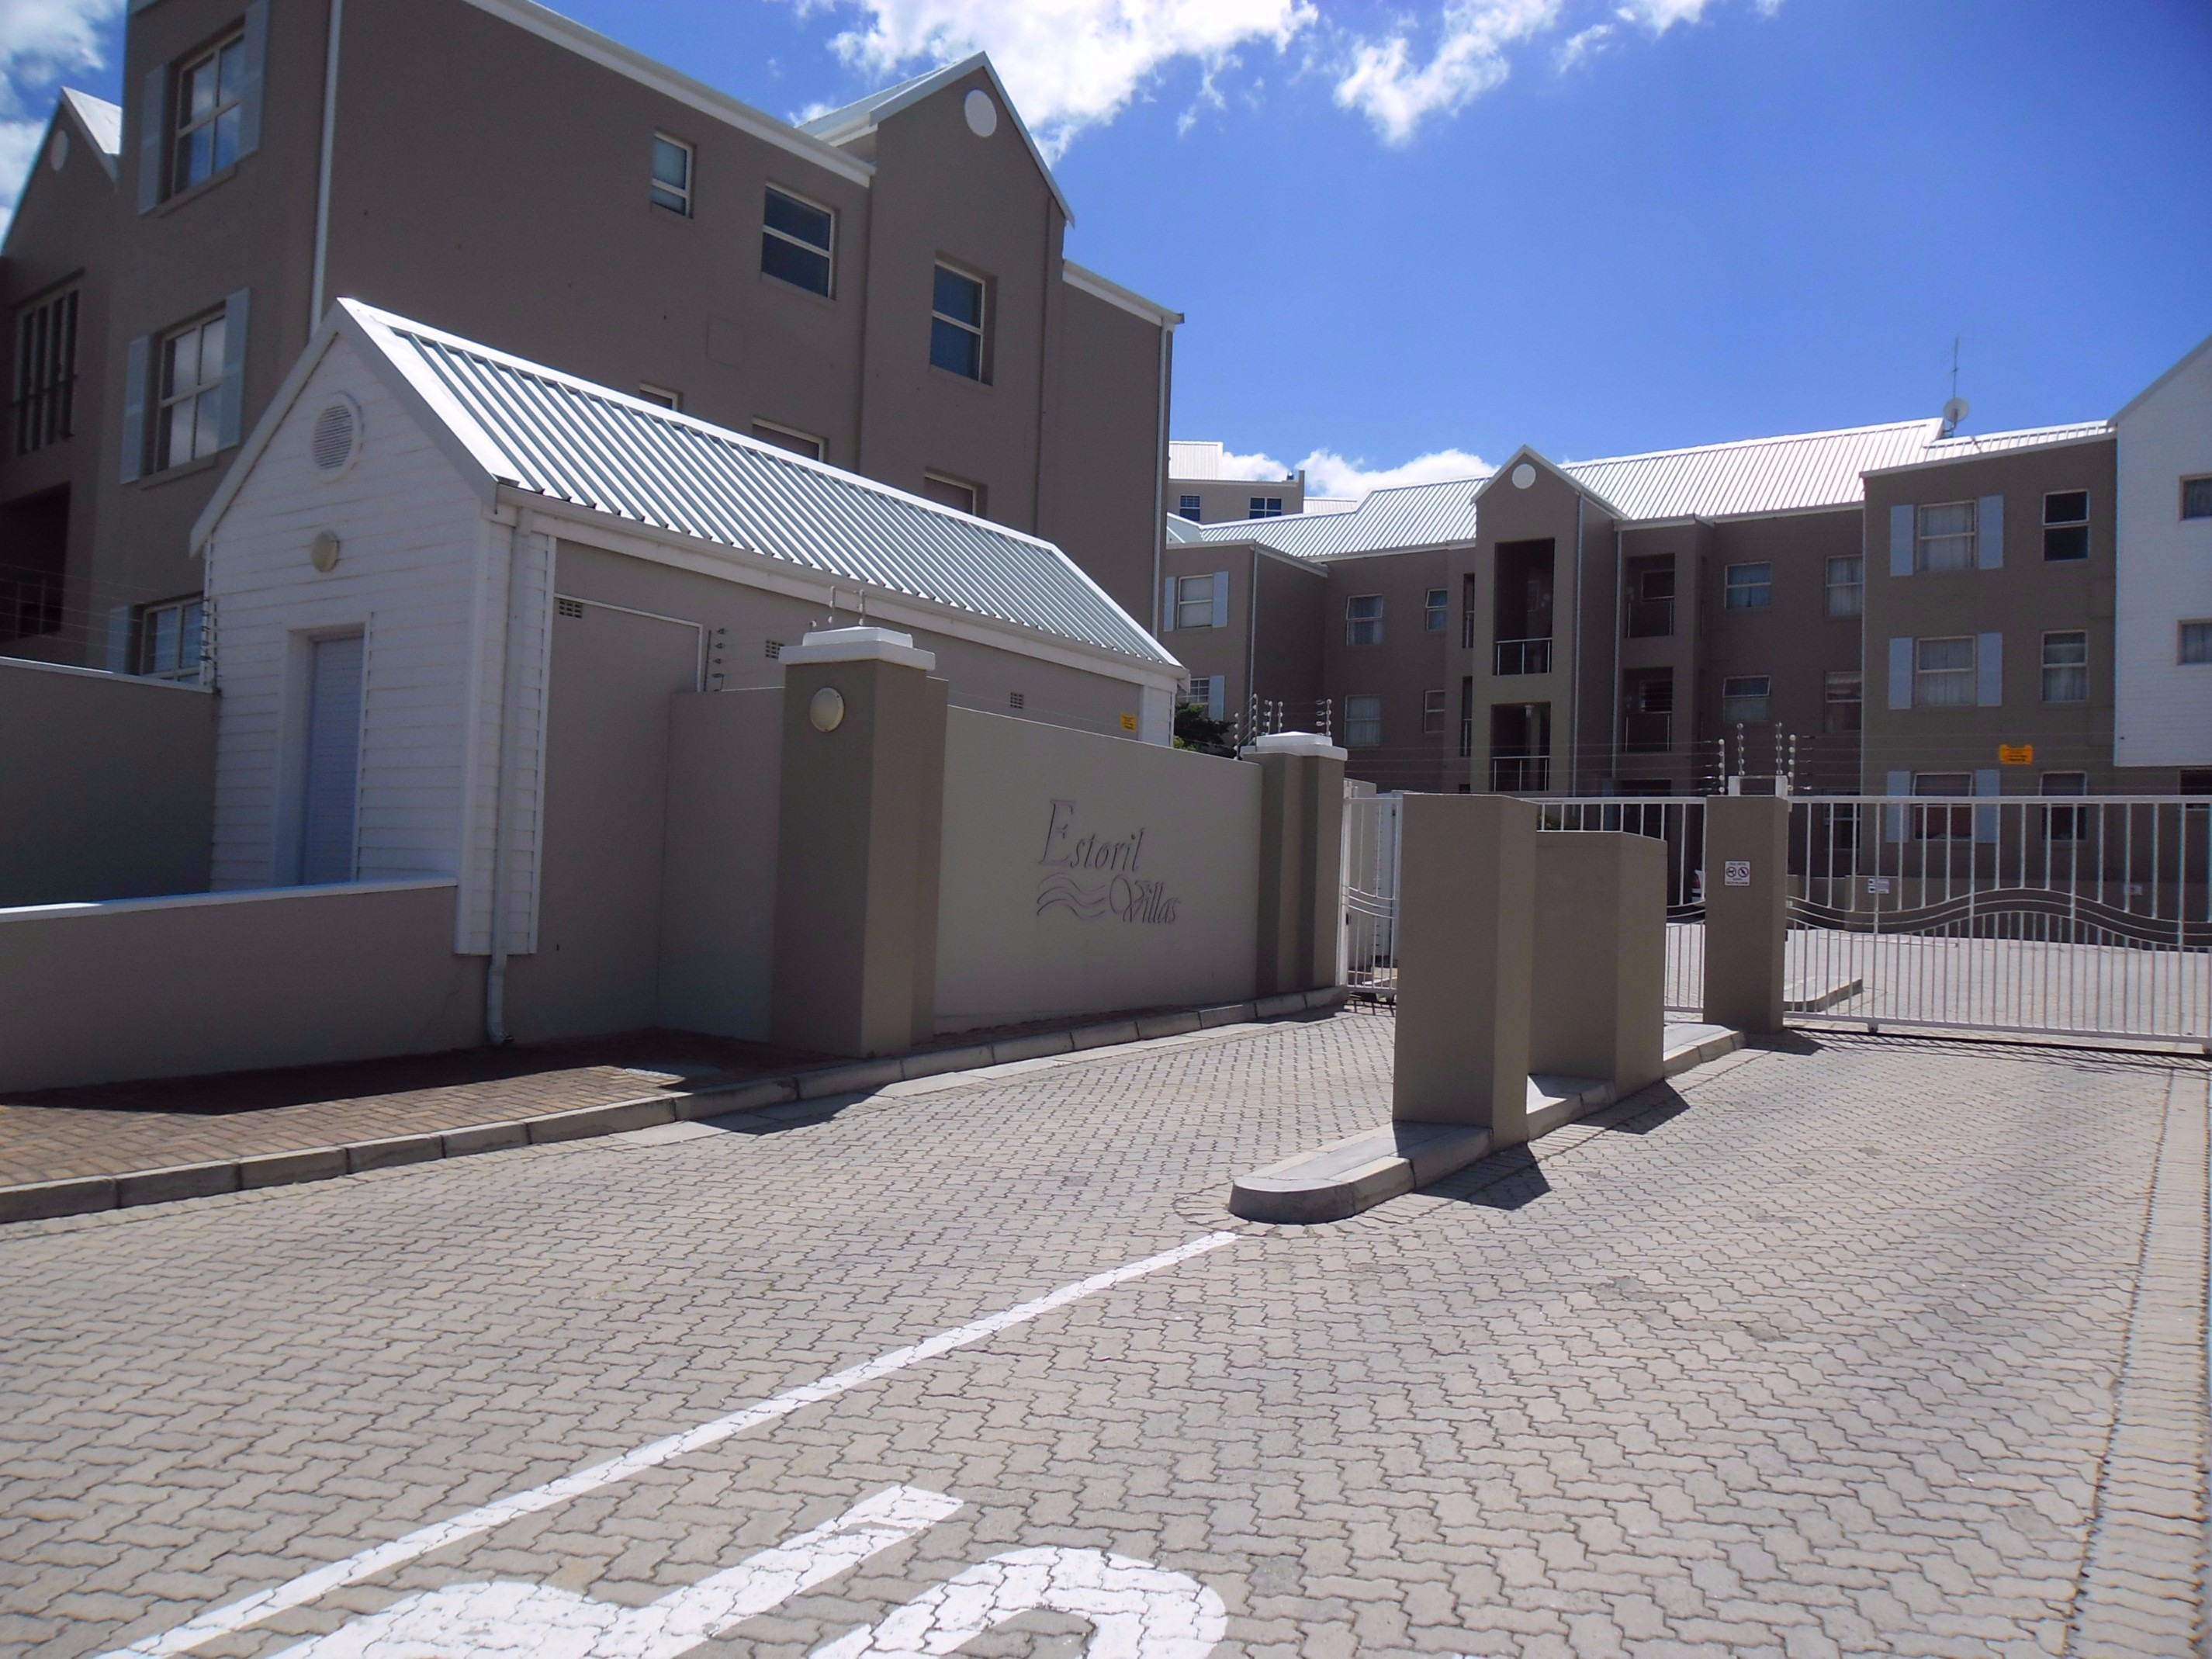 3 Bedroom Apartment for sale in Diaz Beach ENT0080239 : photo#0